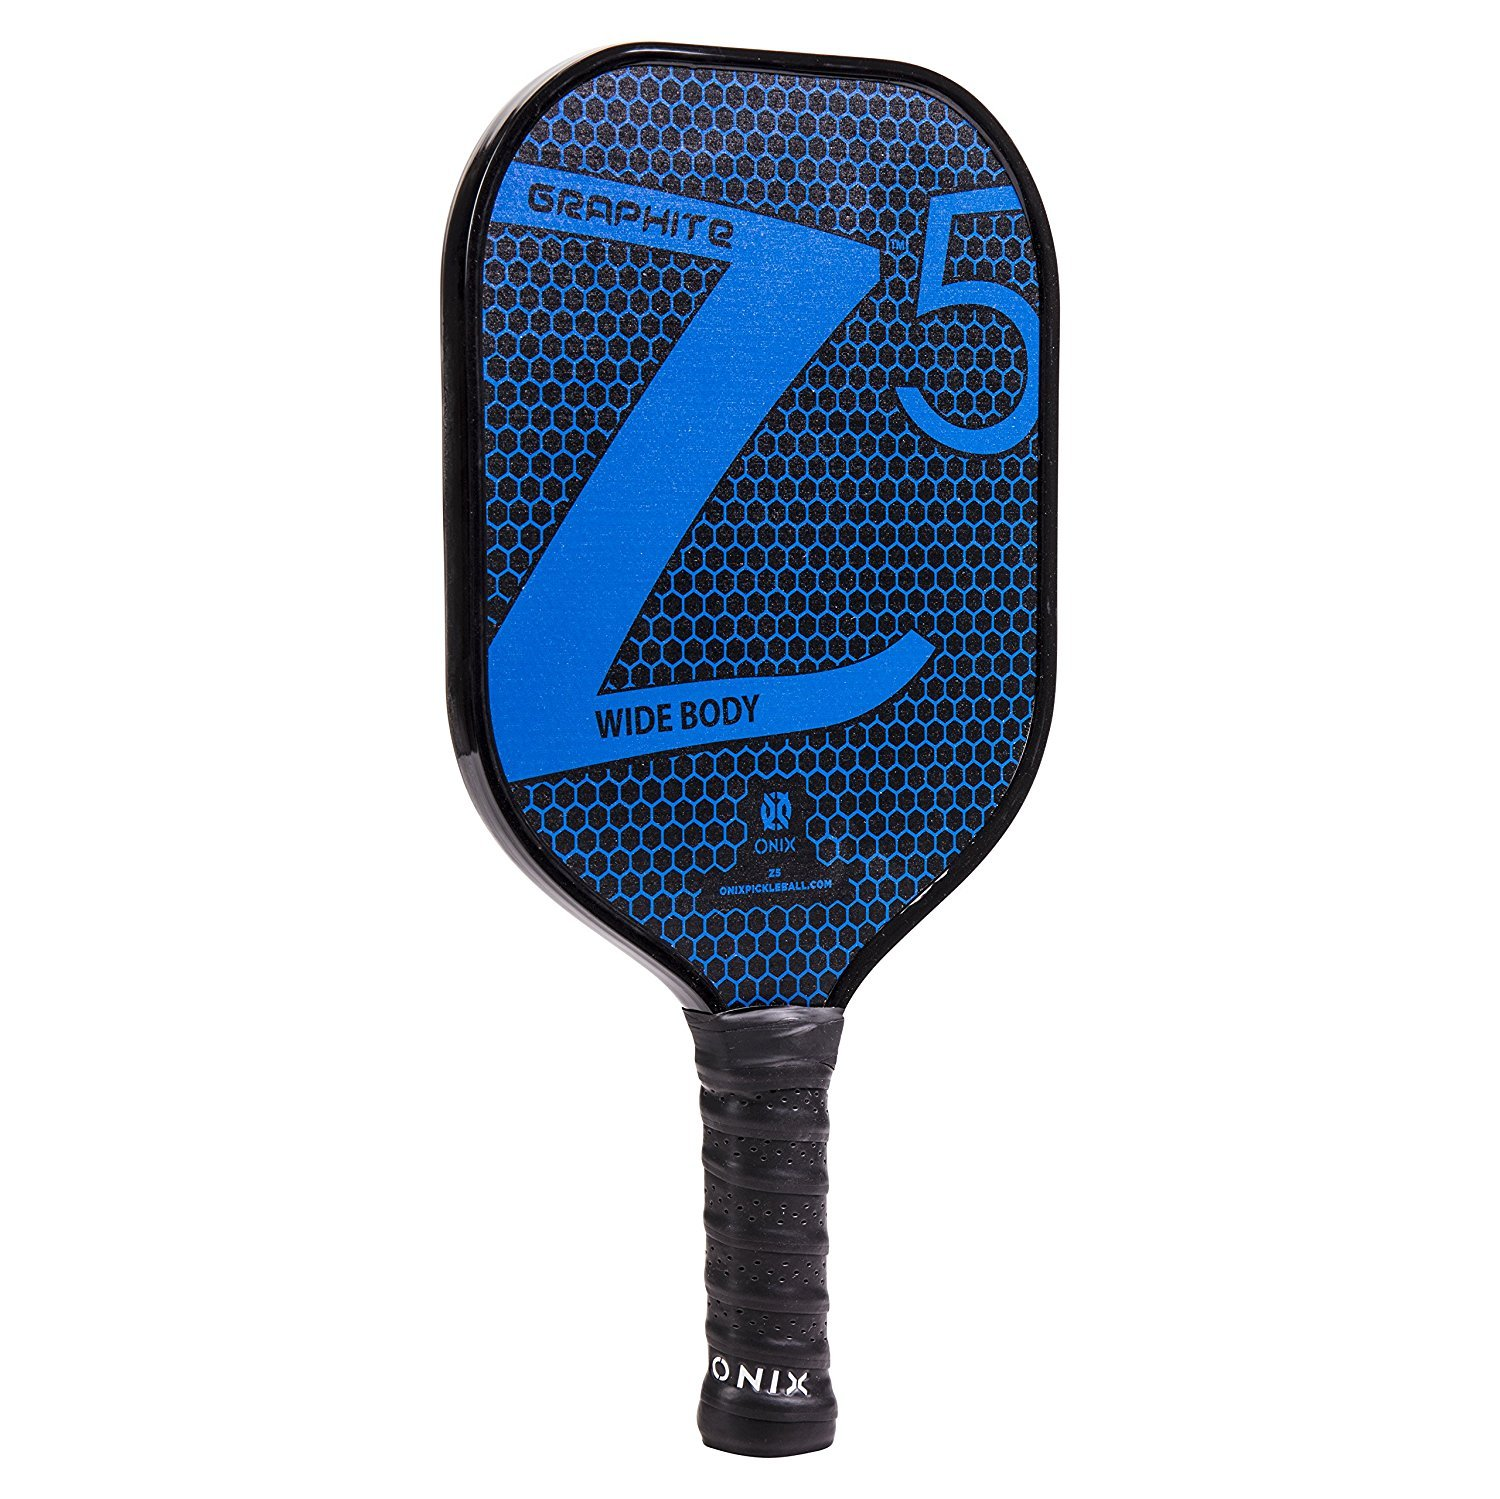 Onix Z5 Graphite Pickleball Paddle and Paddle Cover (Blue)    Gift Pack by Onix (Image #2)